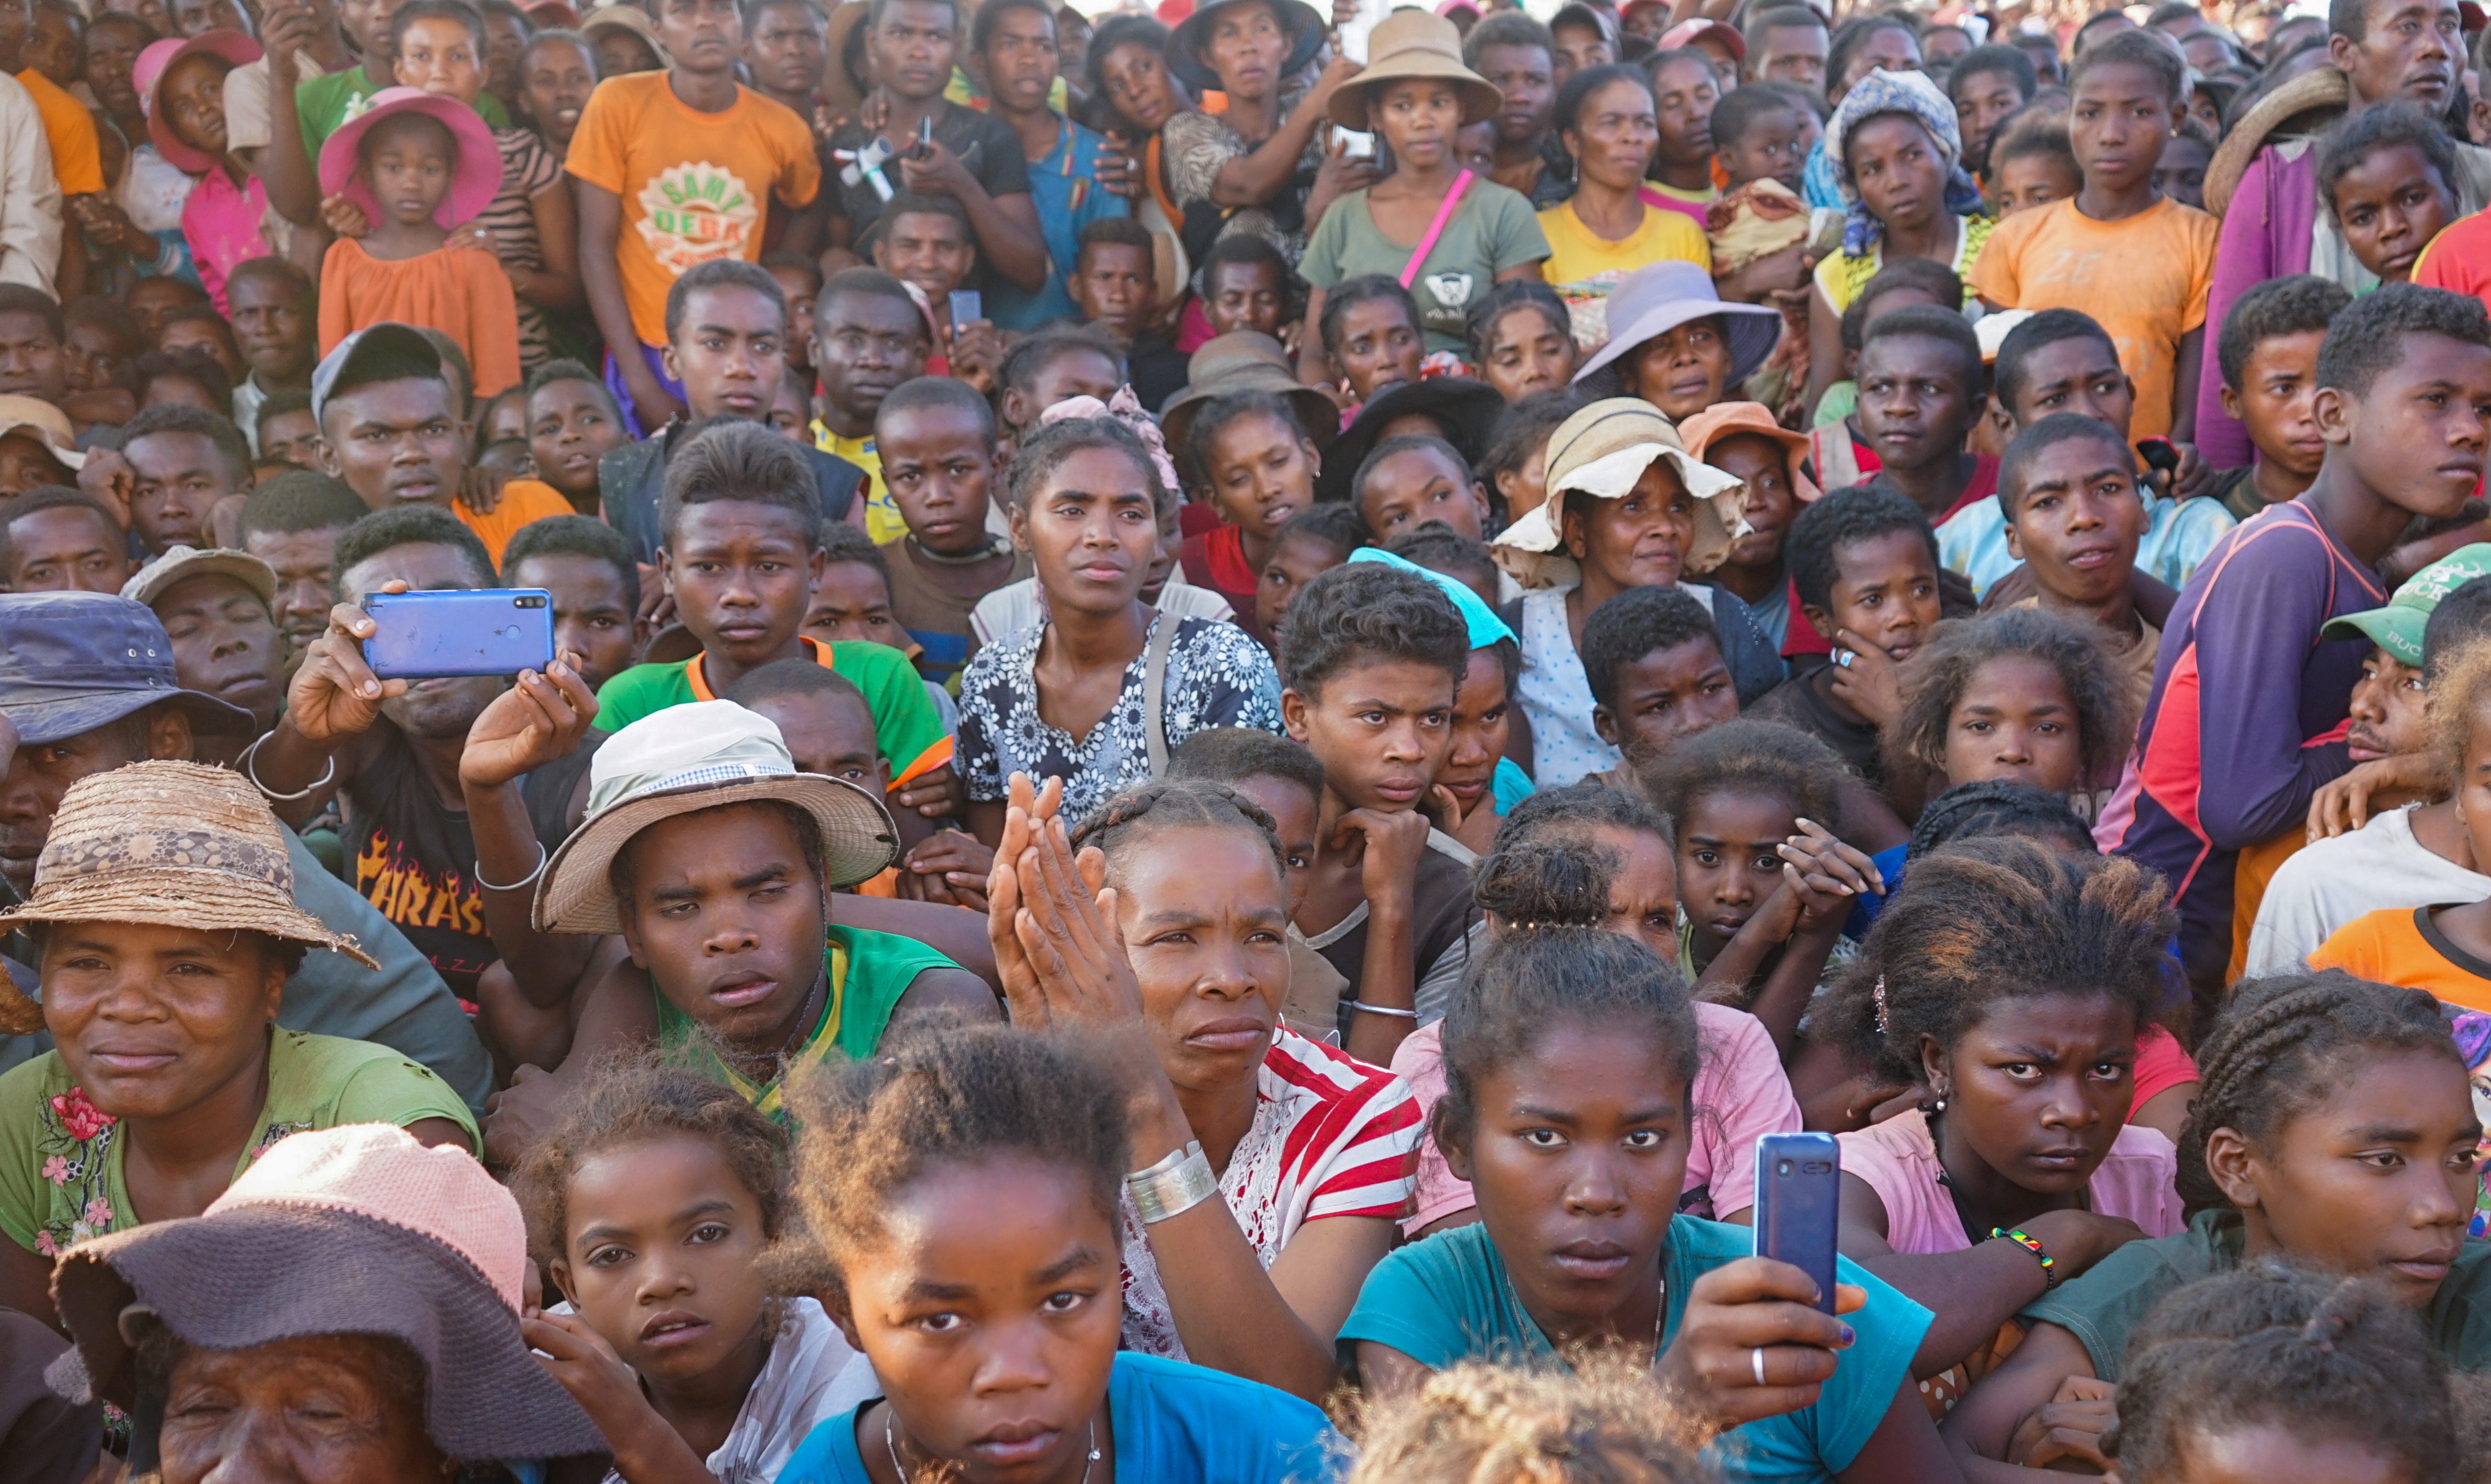 Residents attend the launch of the Titre Vert project (Green Title project) allowing villagers and refugees to utilise land in Fort-Dauphin, southern Madagascar September 30, 2021. REUTERS/Joel Kouam